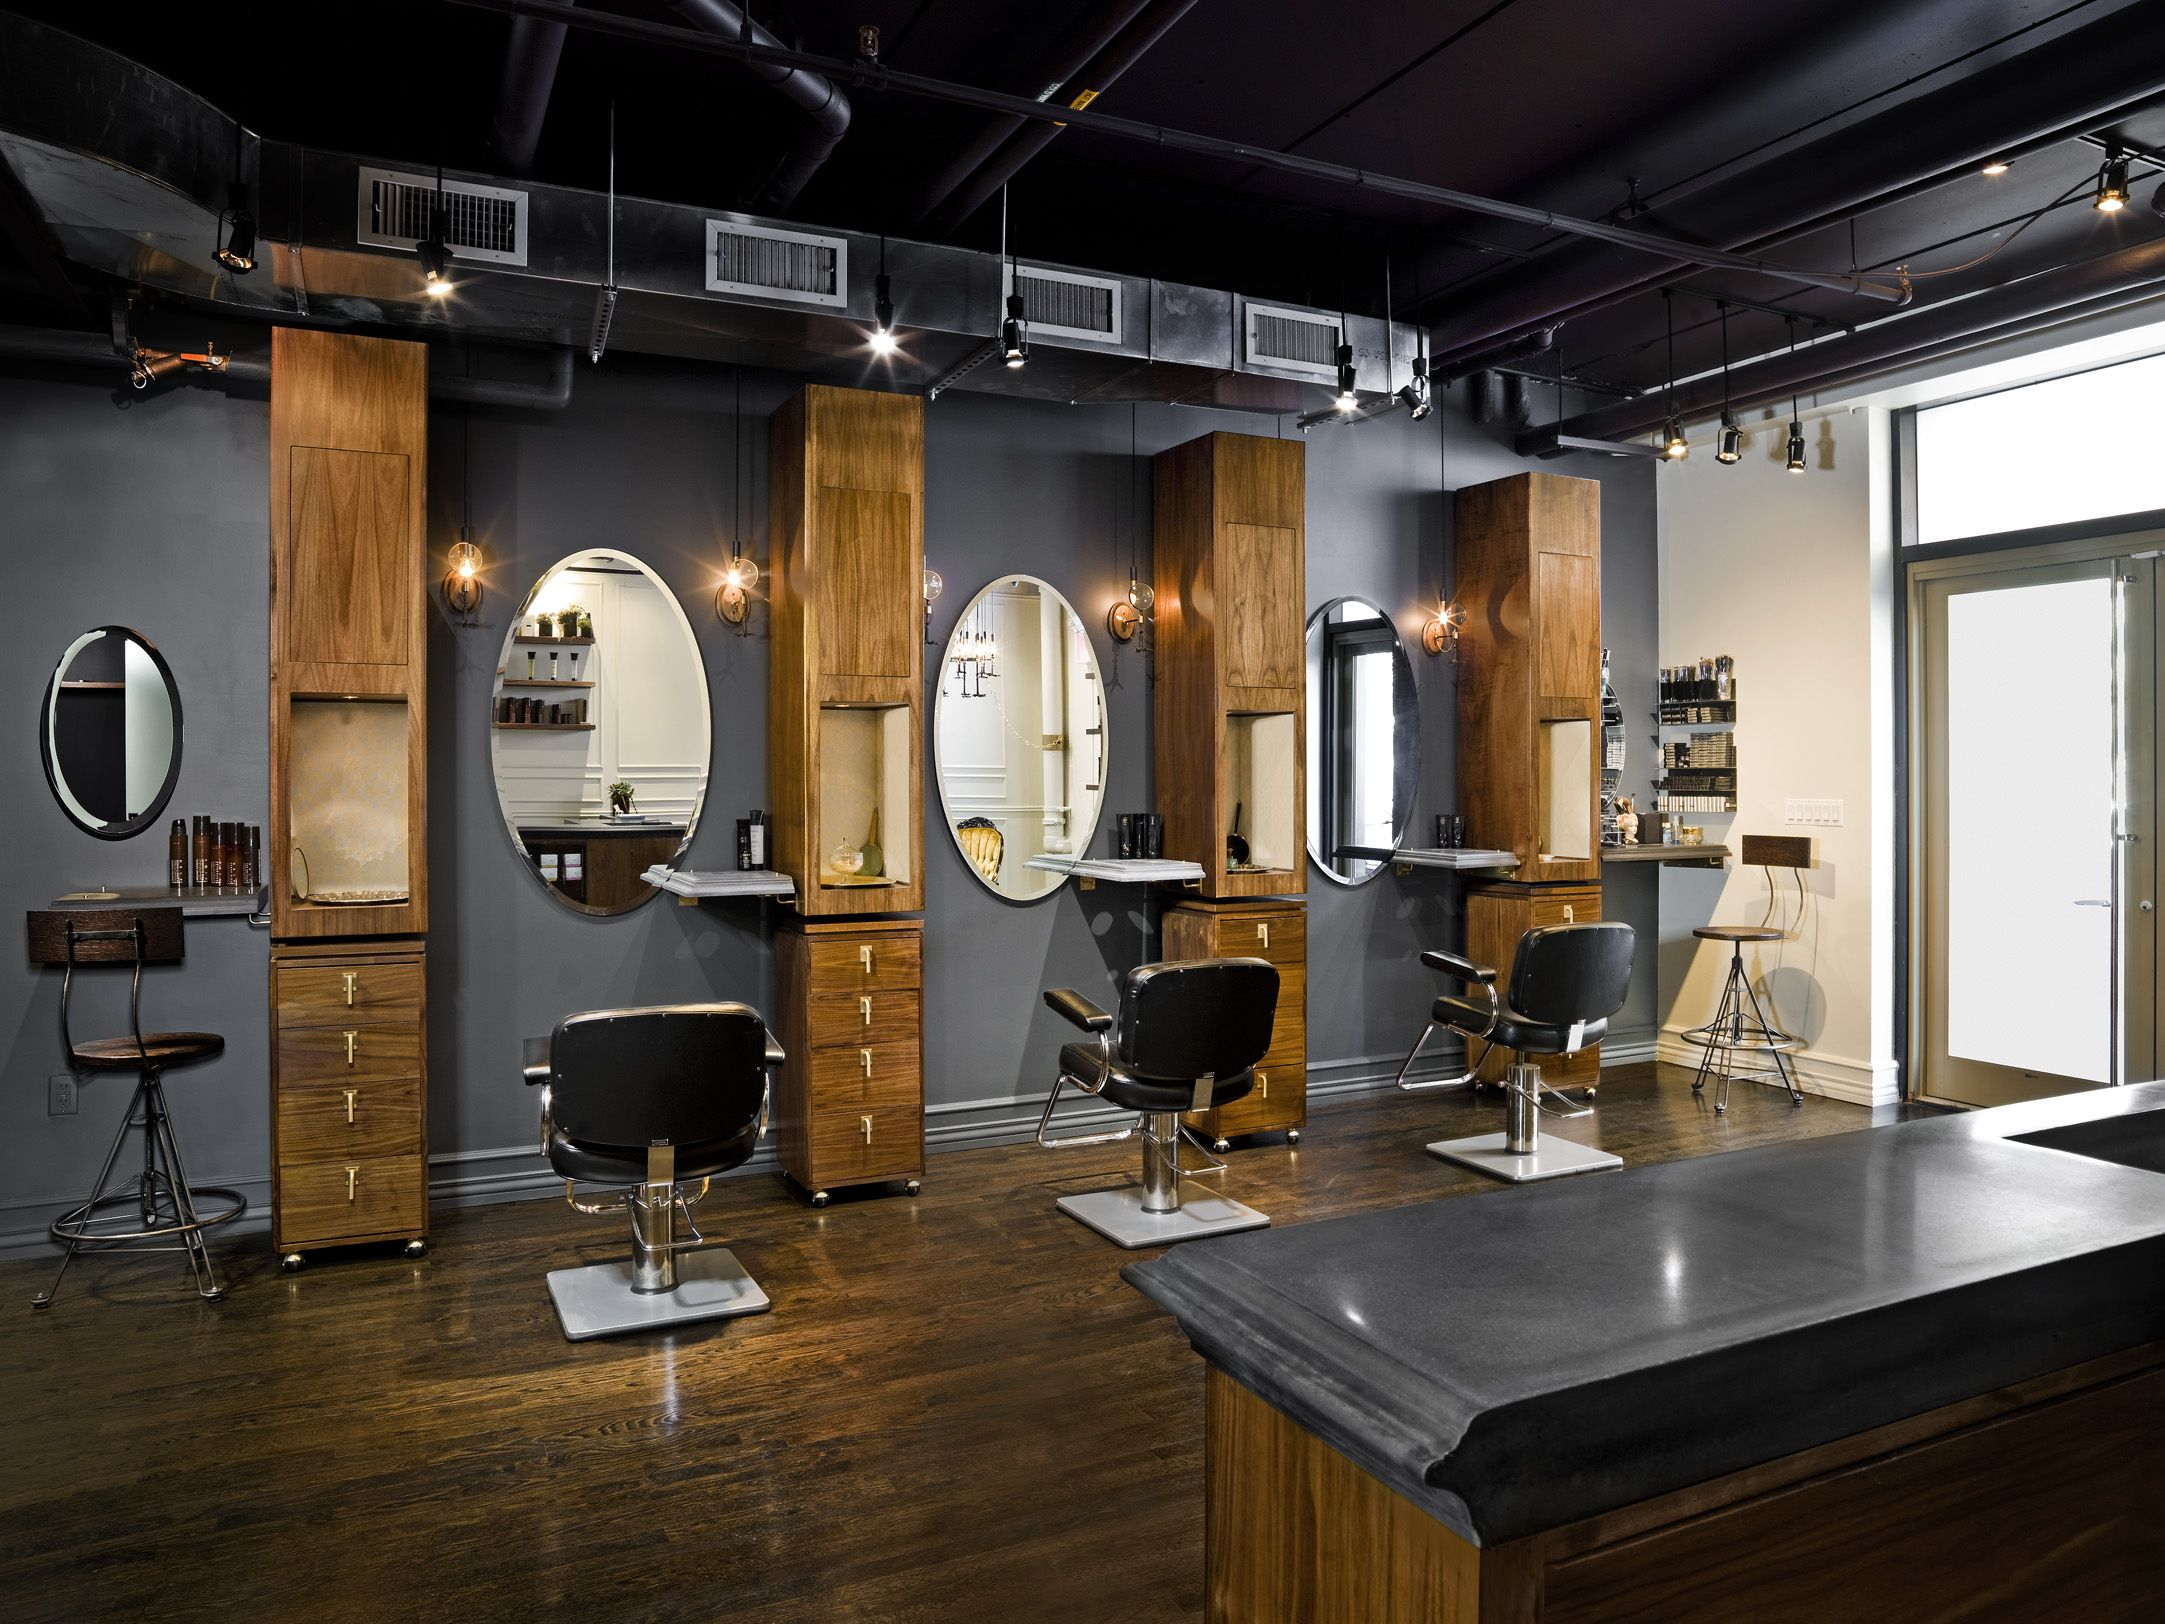 SALON STATIONS | Barber shop decor, Barbershop design ...